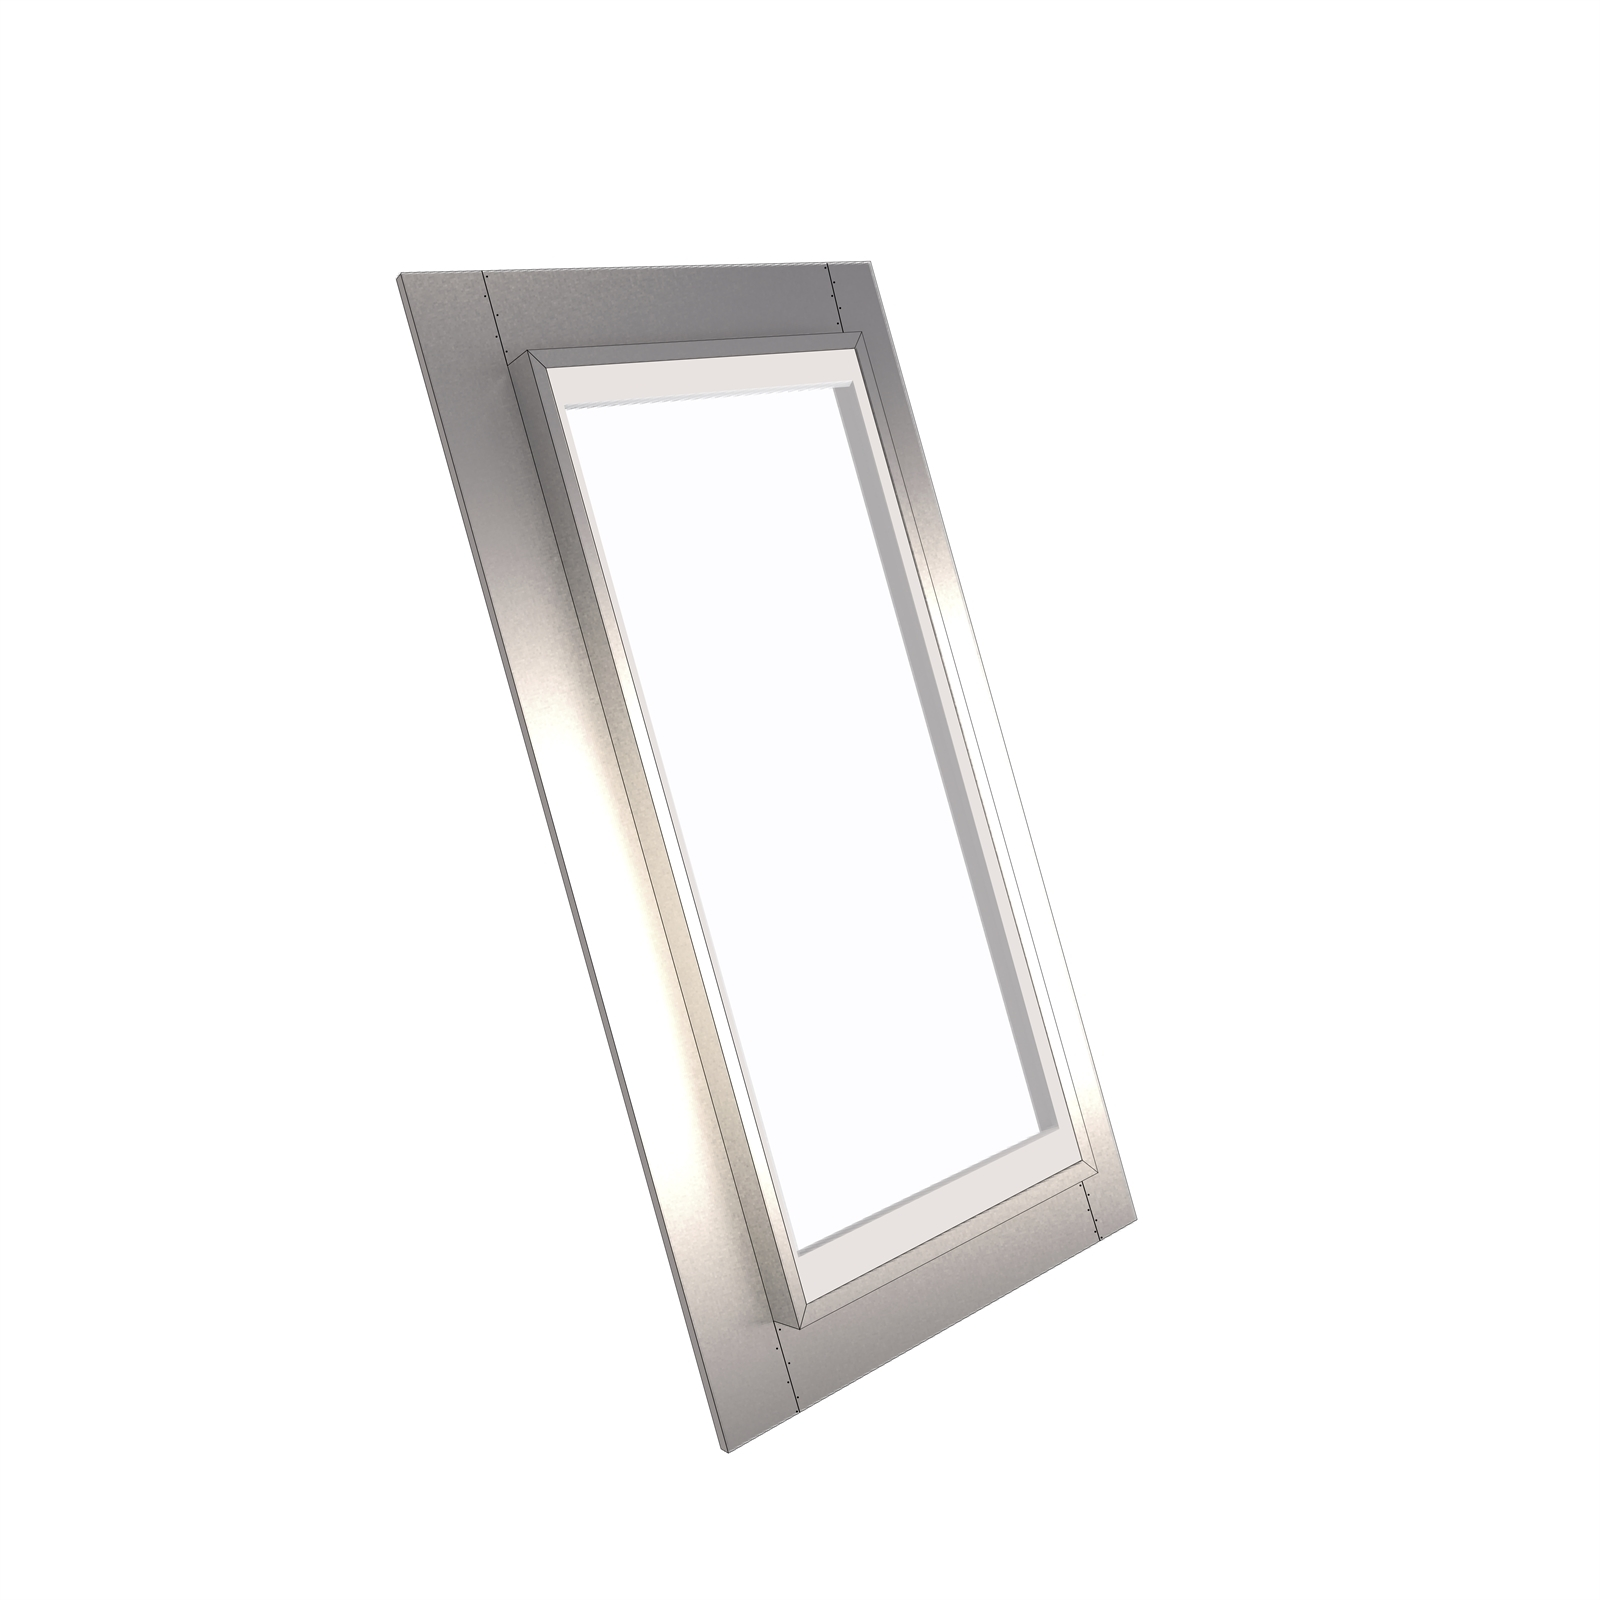 EzyLite 1000 x 800mm Fixed Roof Window For Corrugated Roof - Smart Glass